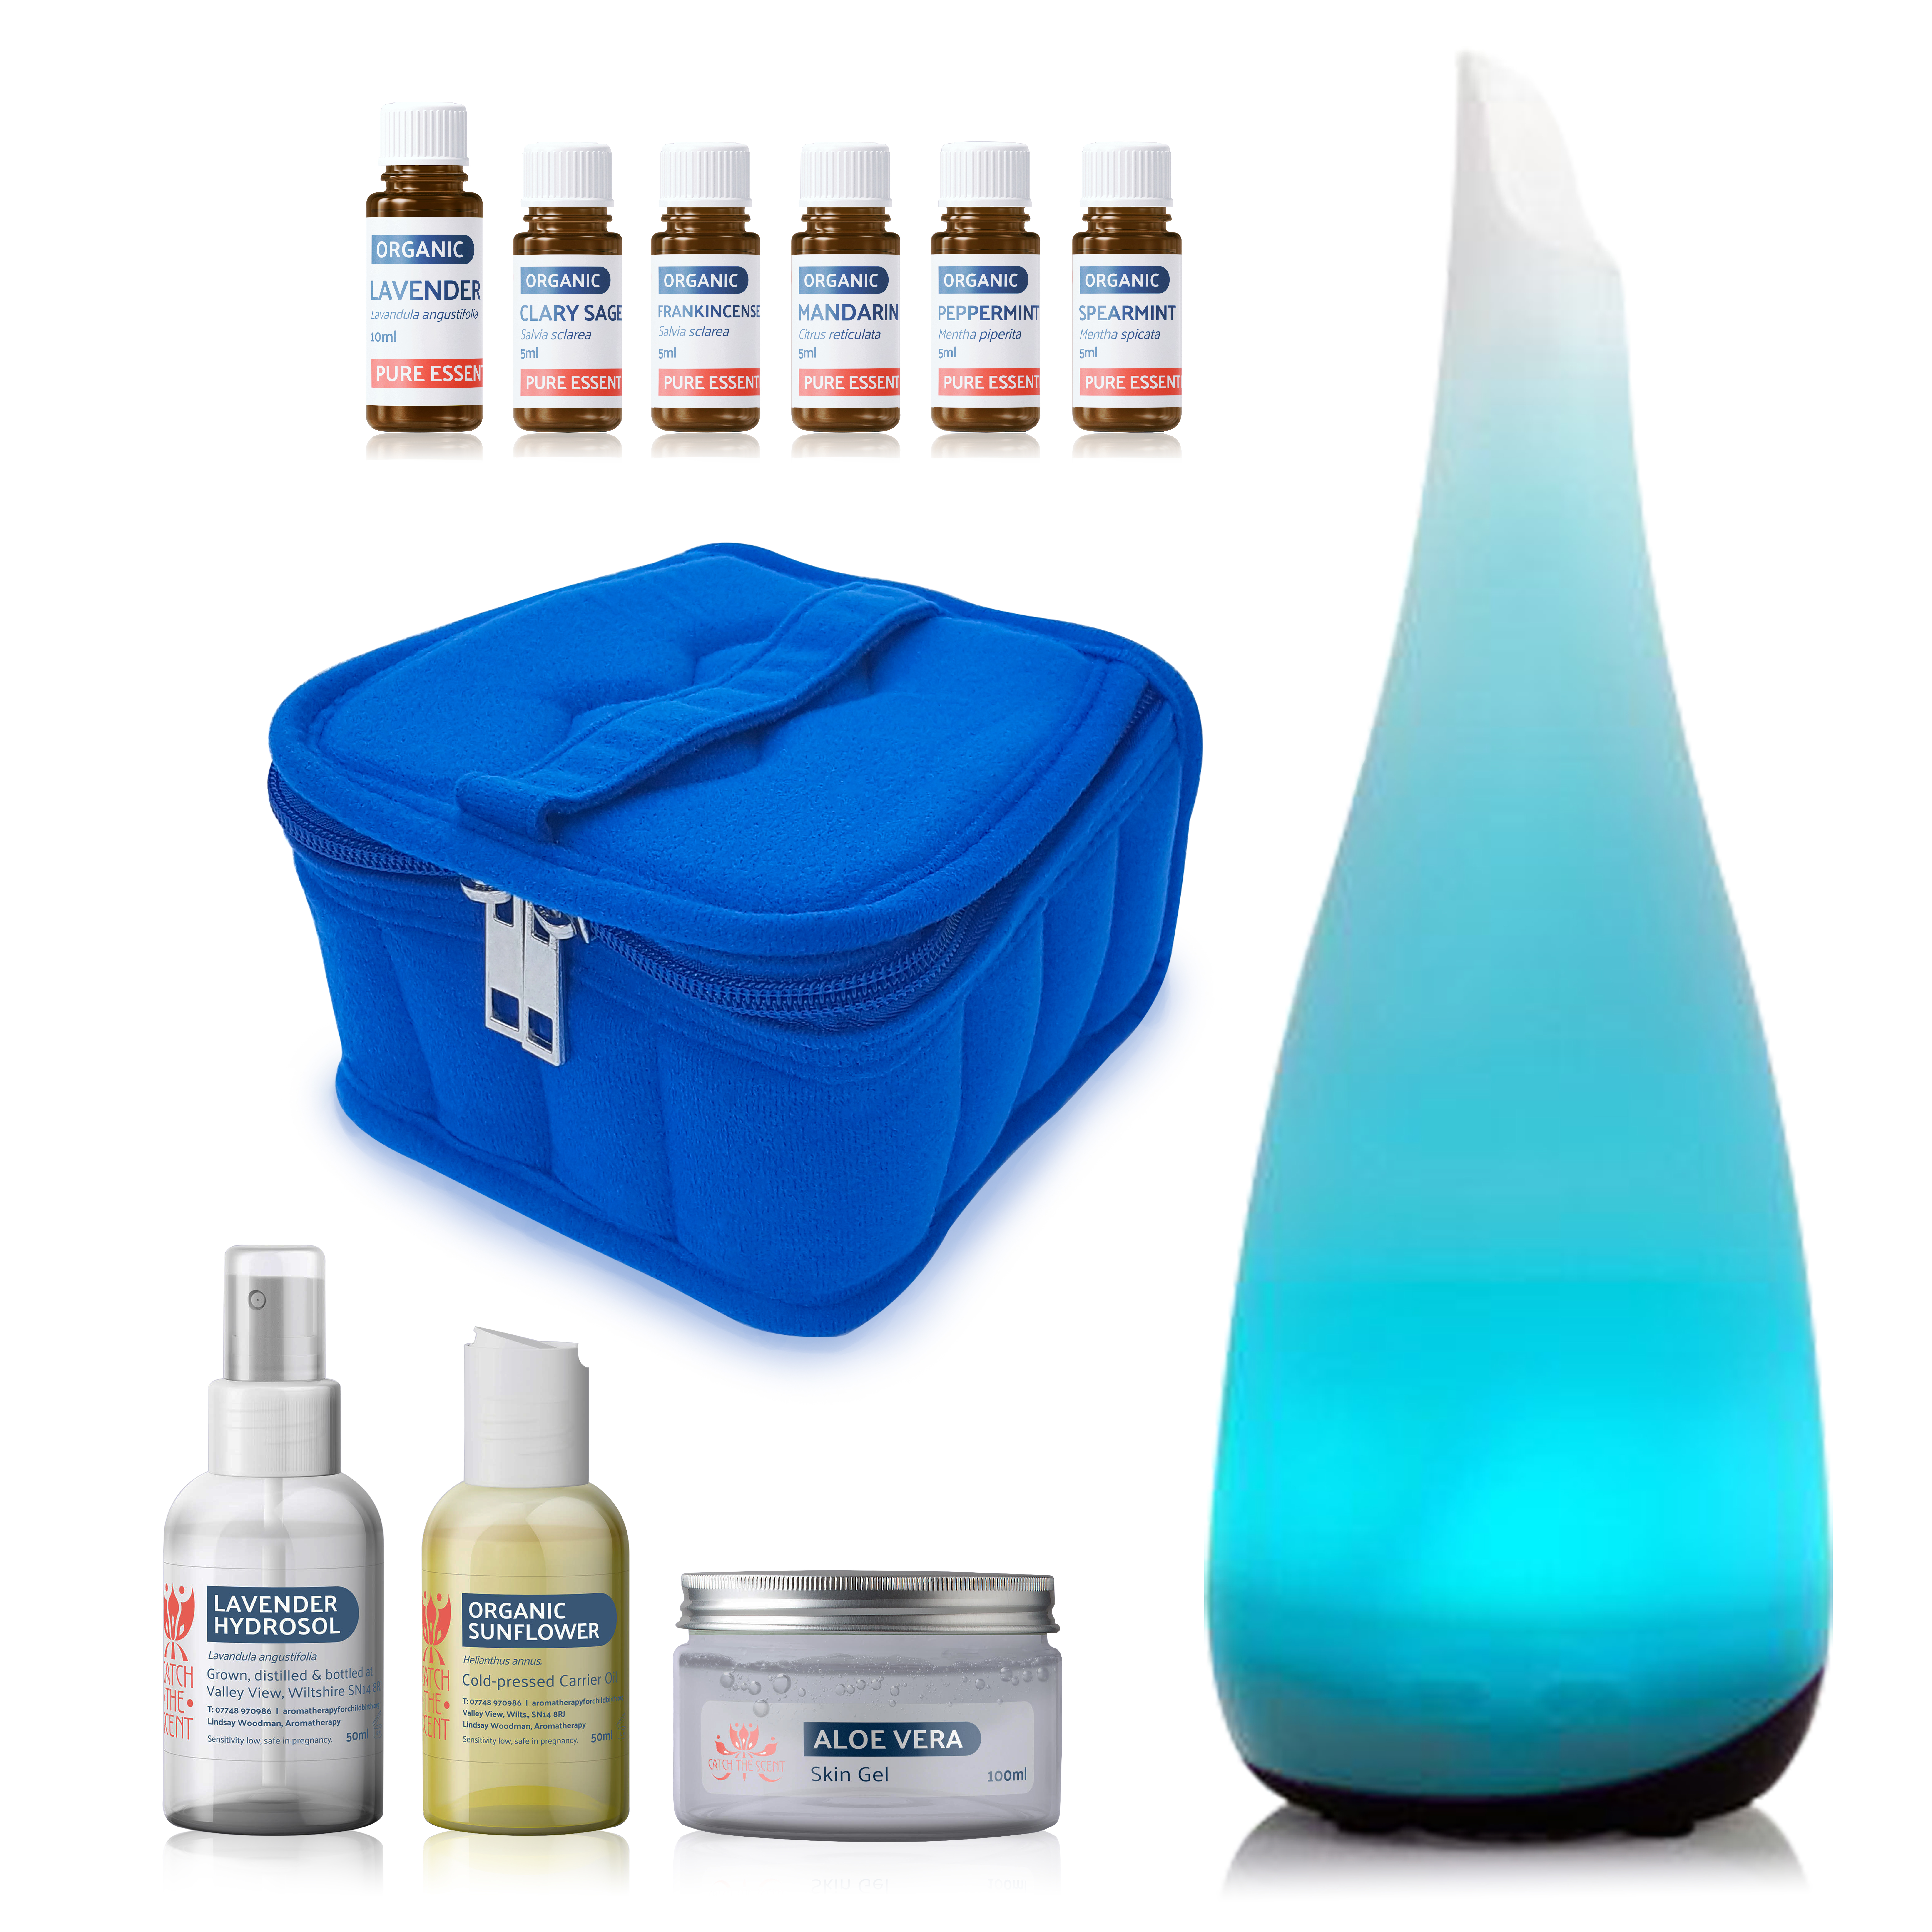 Full Professional Kit - Including Diffuser - Special Price - 10% discount SKU013